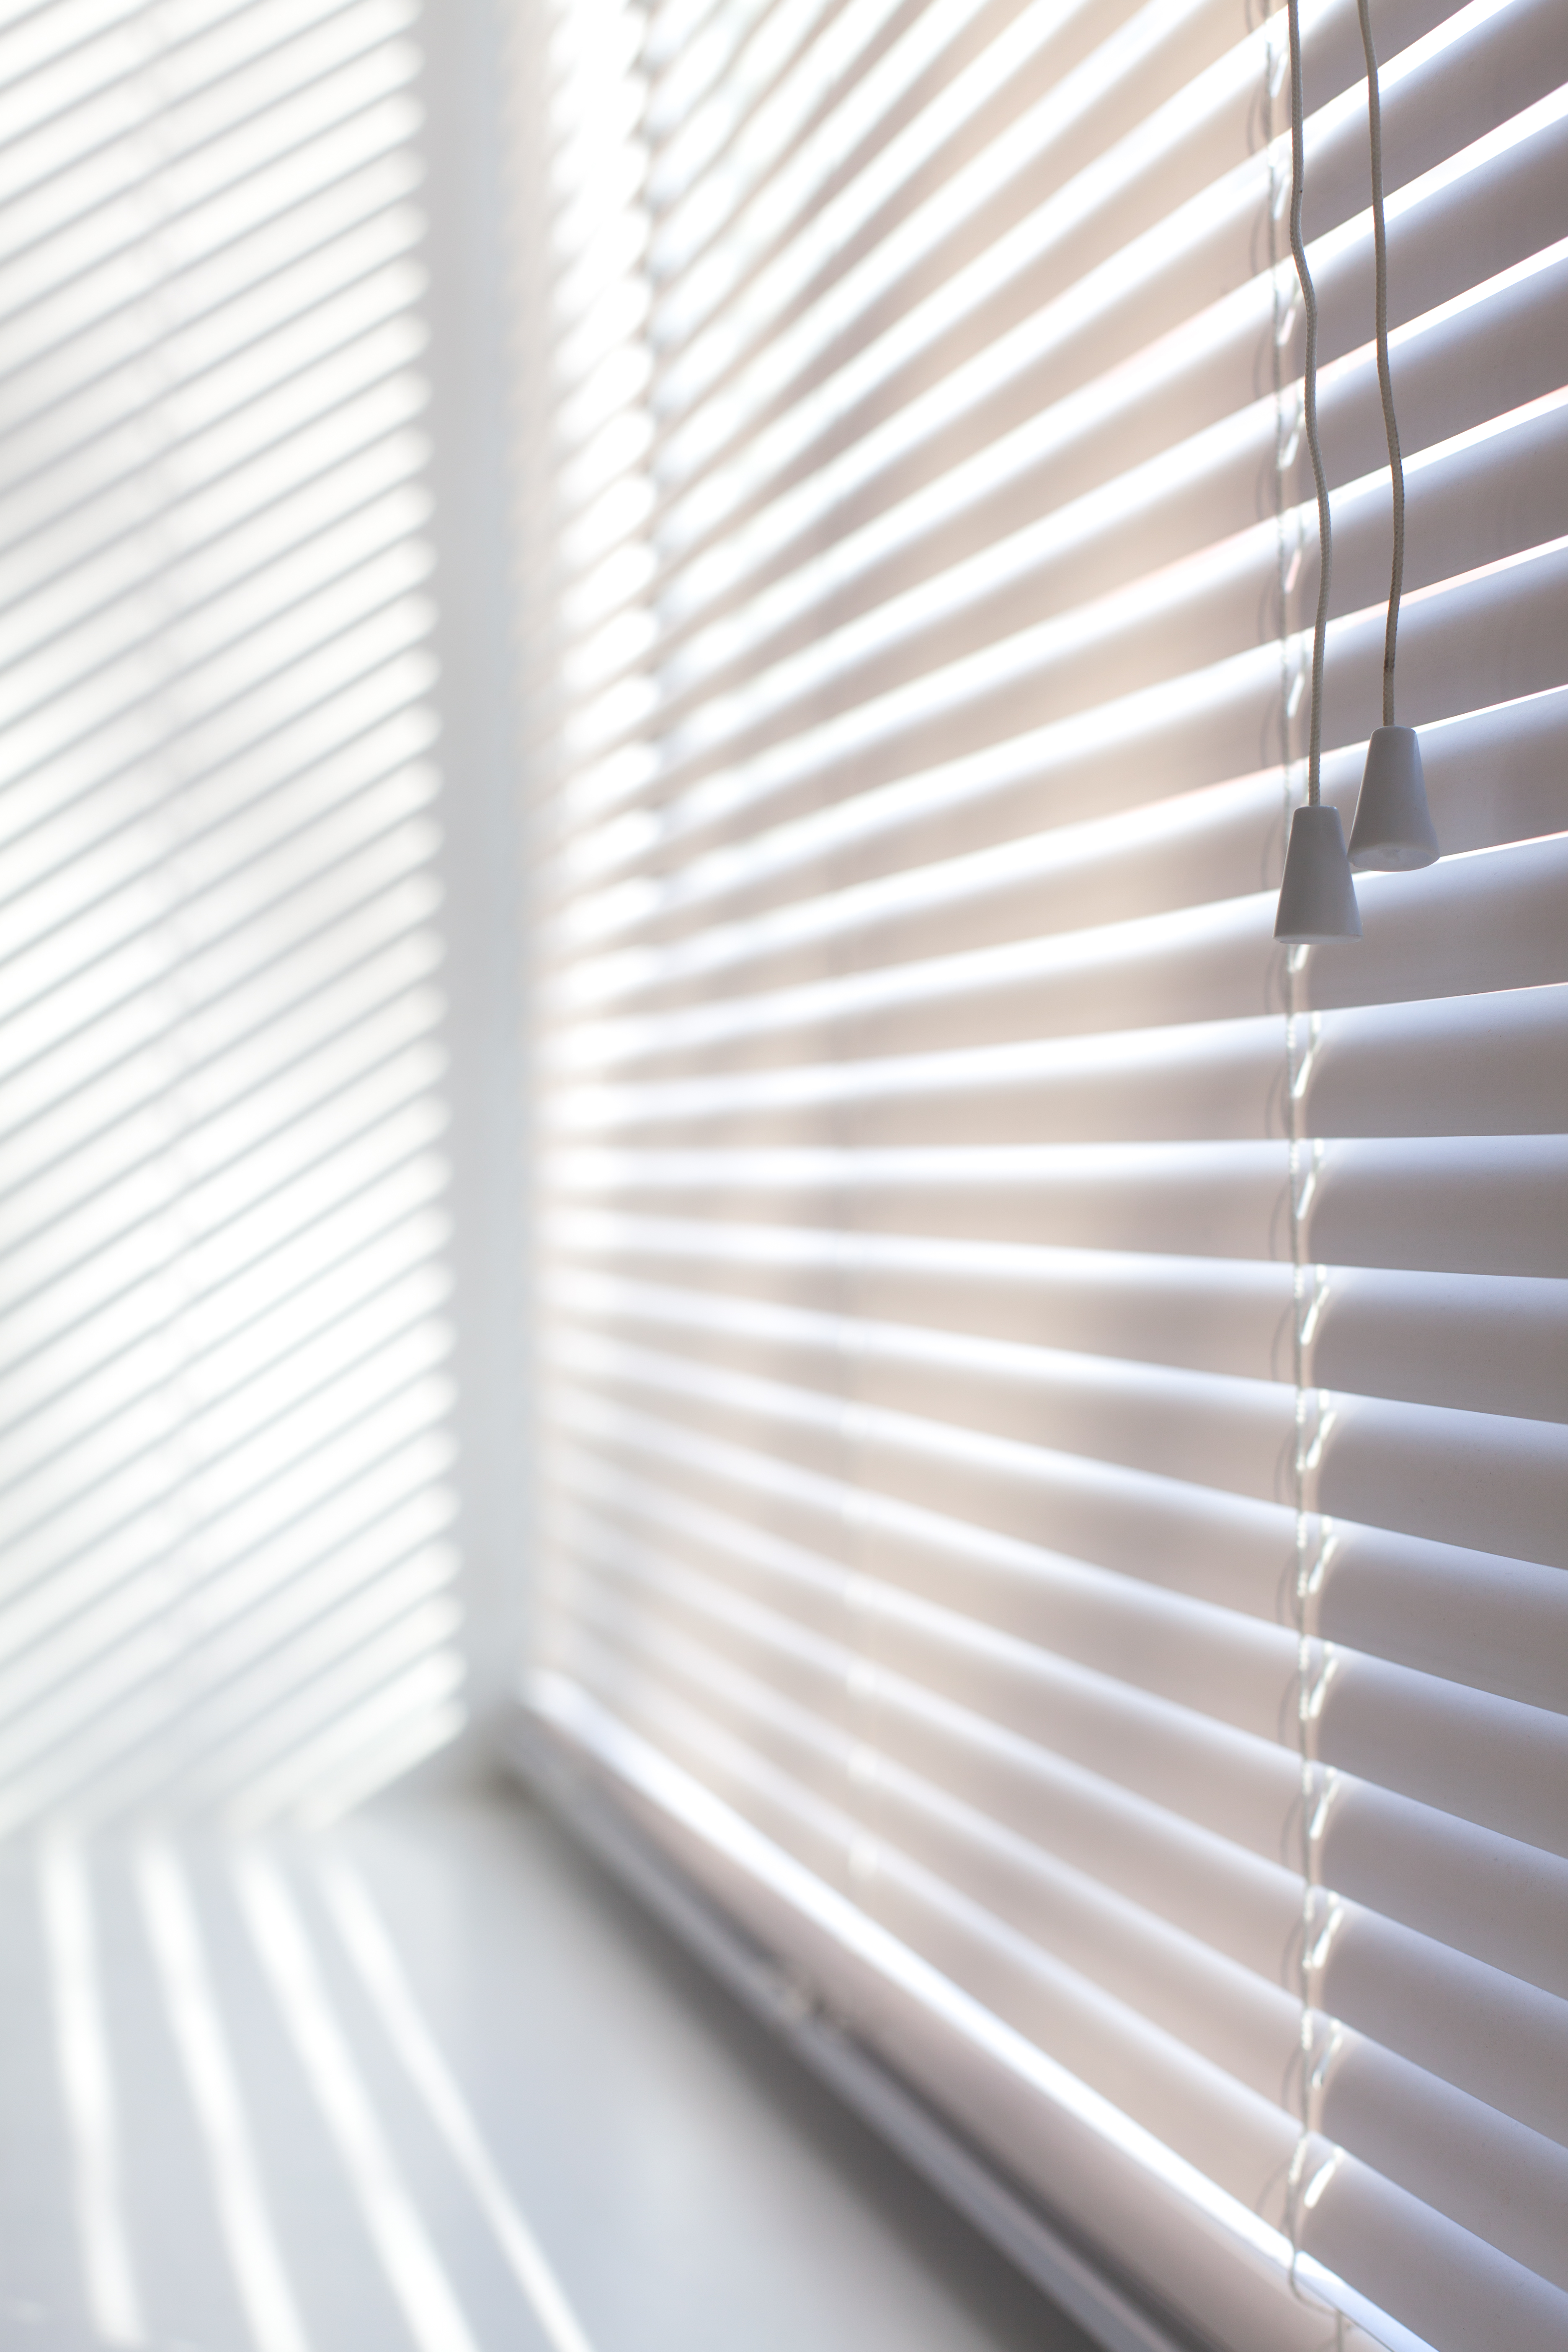 How To Clean Sun Yellowed White Plastic Blinds Hunker